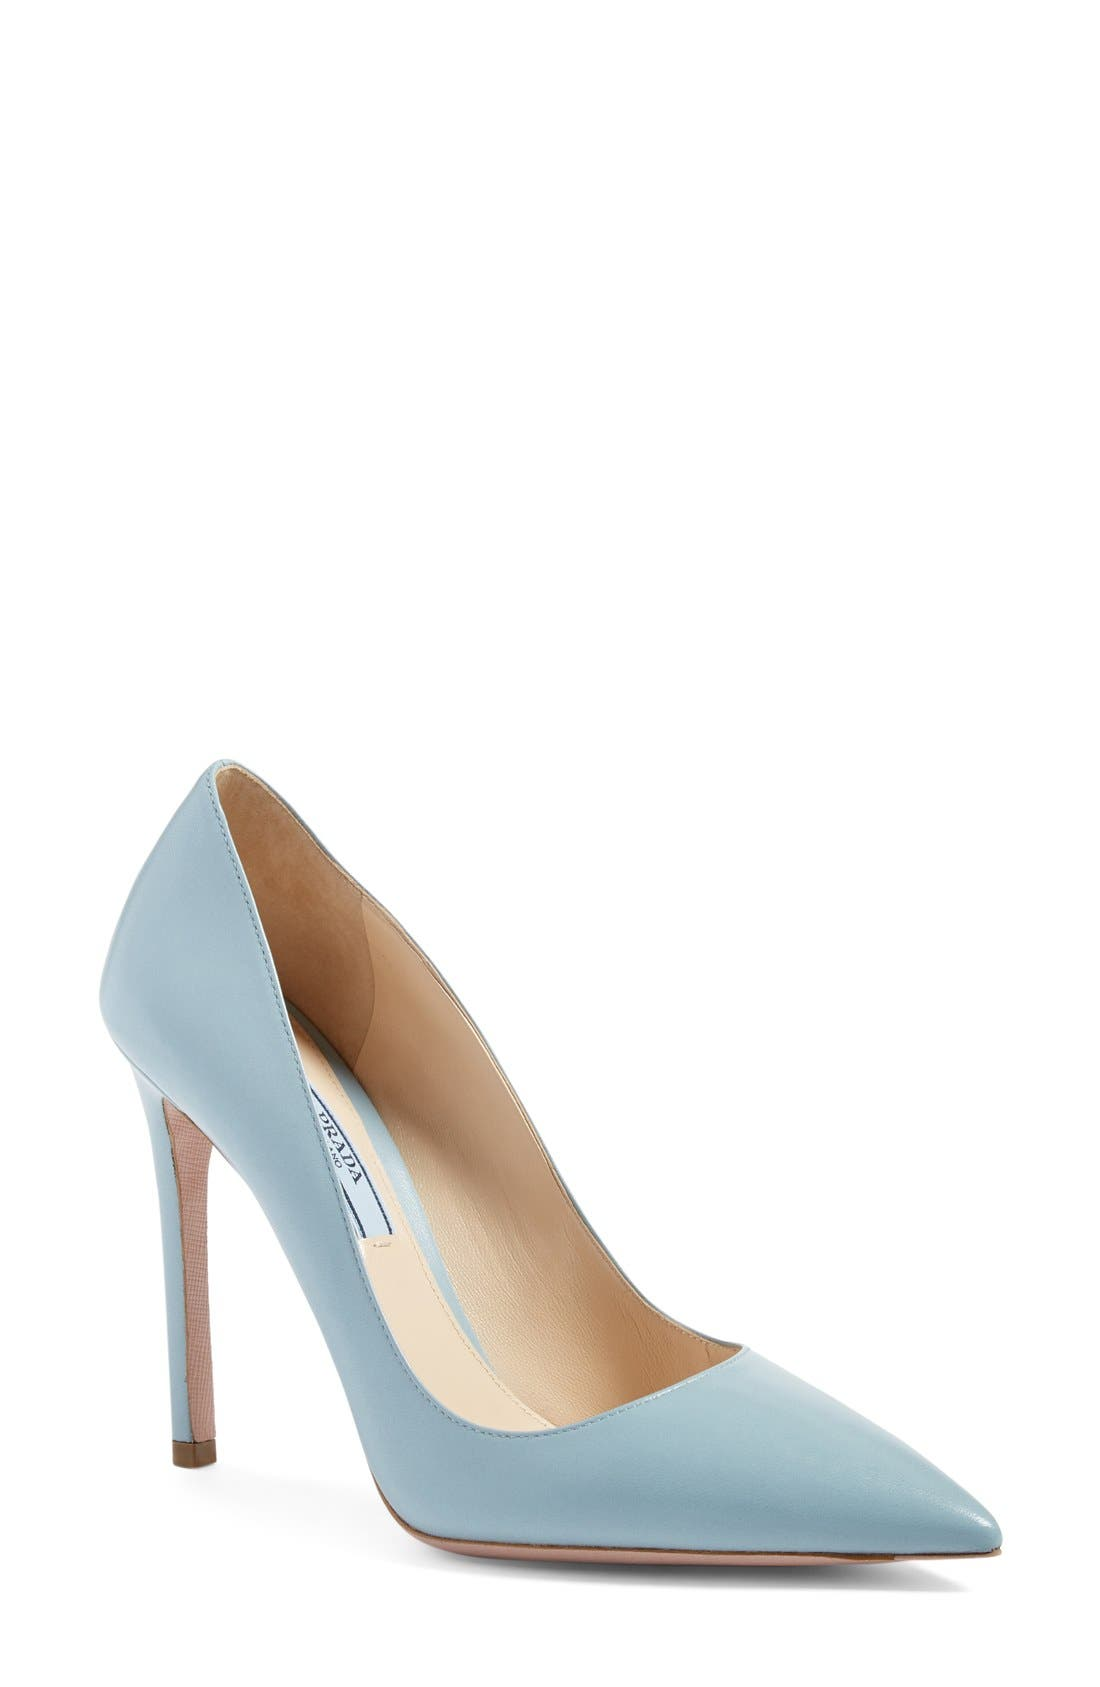 Main Image - Prada Pointy Toe Pump (Women)